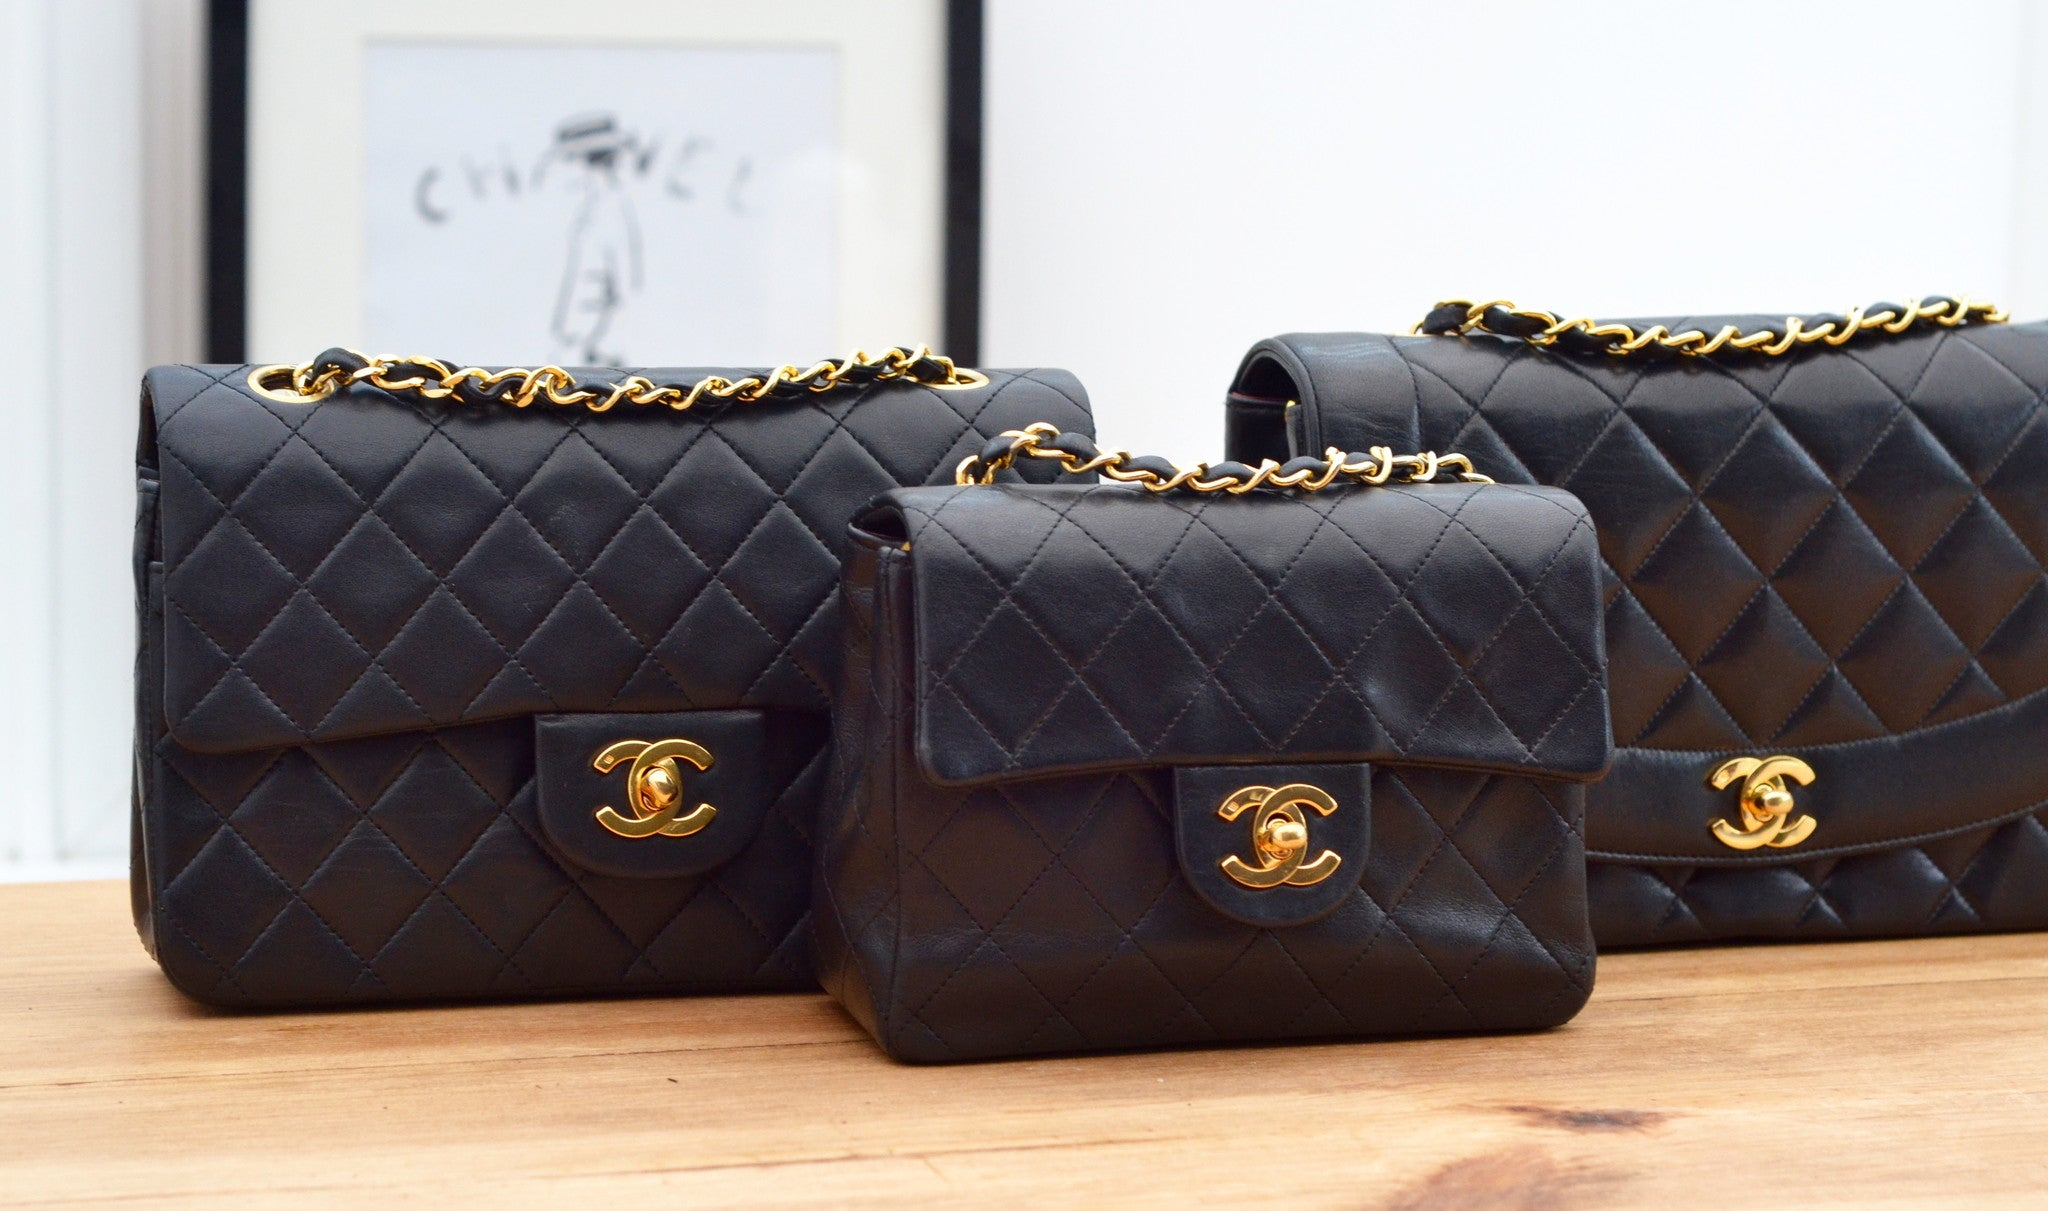 The insider's guide to buying vintage Chanel 2.55 bags ...